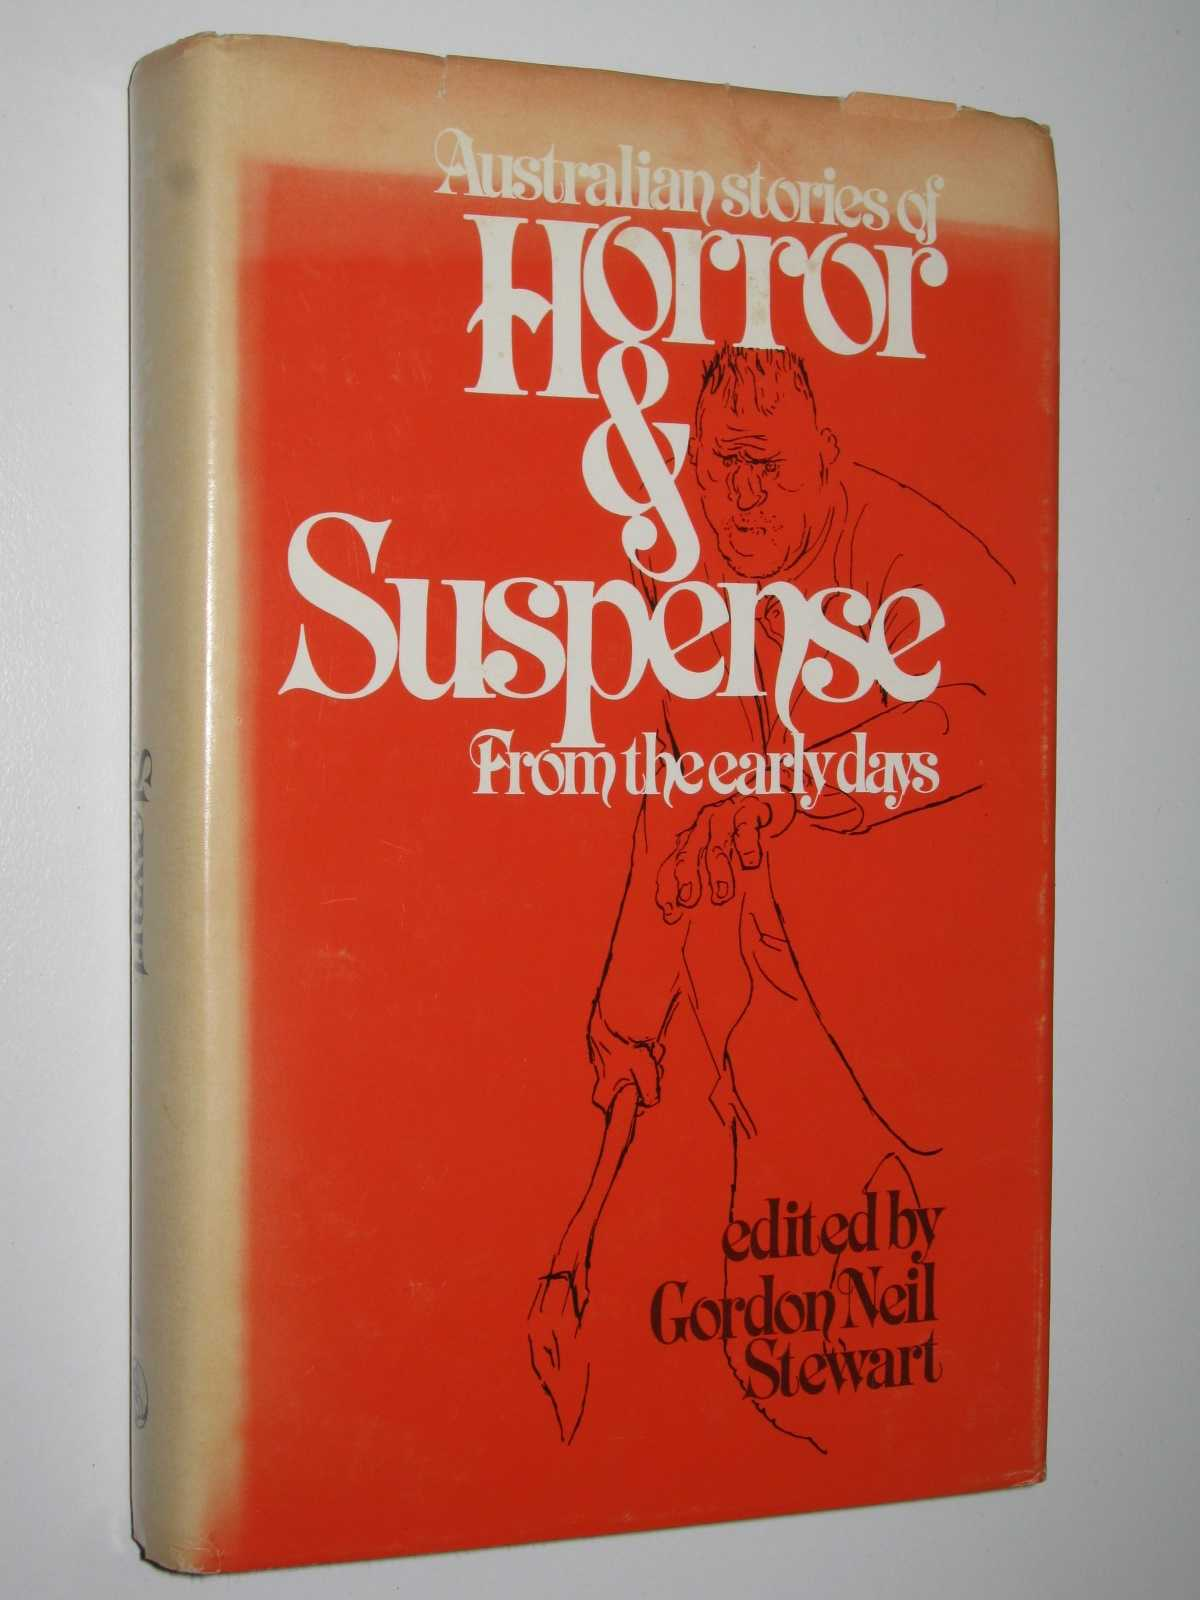 Australian Stories of Horror and Suspense from the Early Days, Stewart, Gordon Neil (edited)